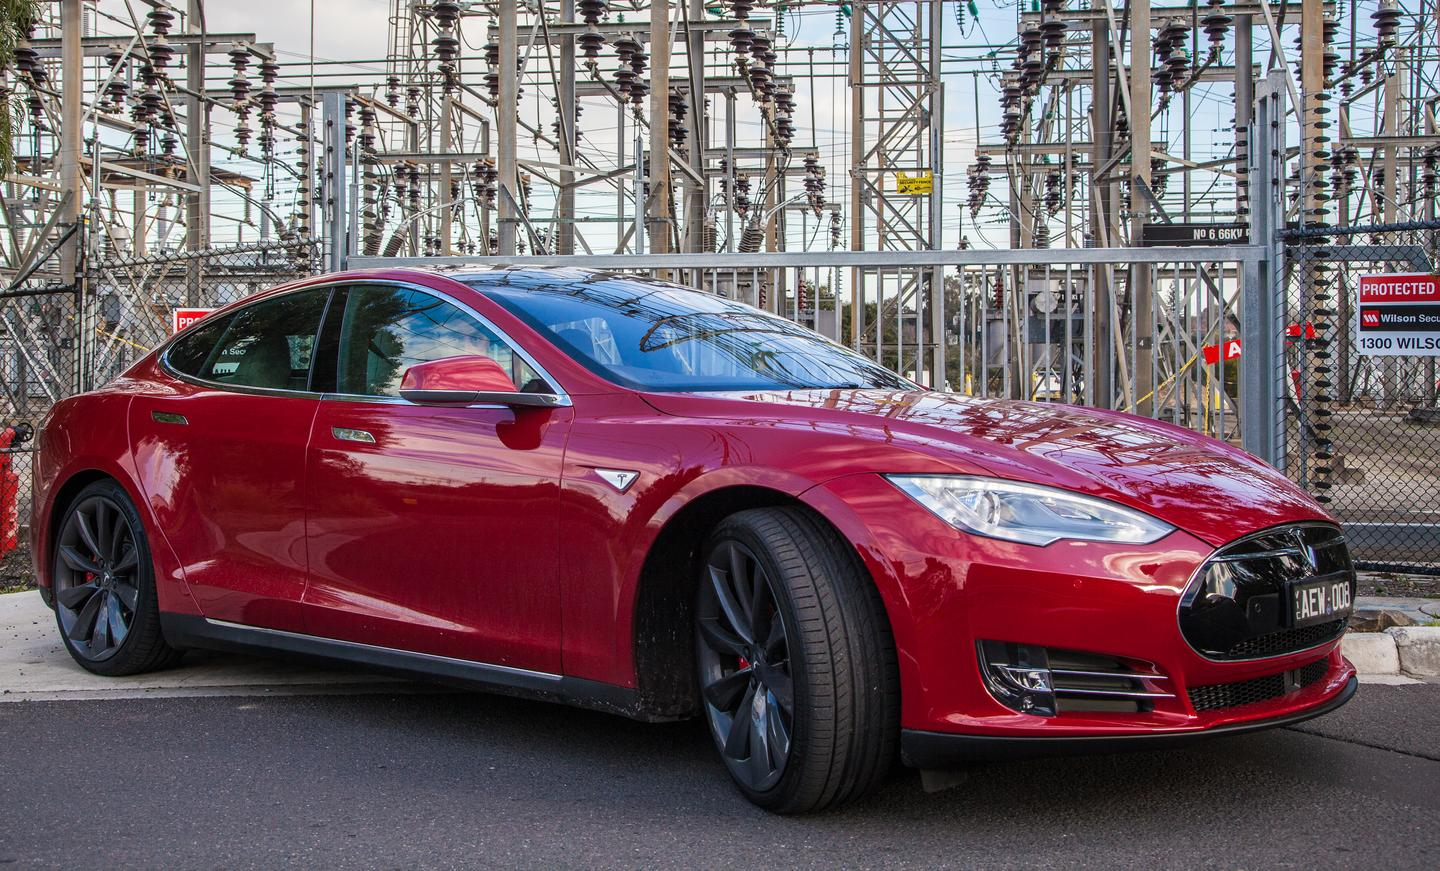 The Model S P85D combines supercar acceleration with a practical, spacious body